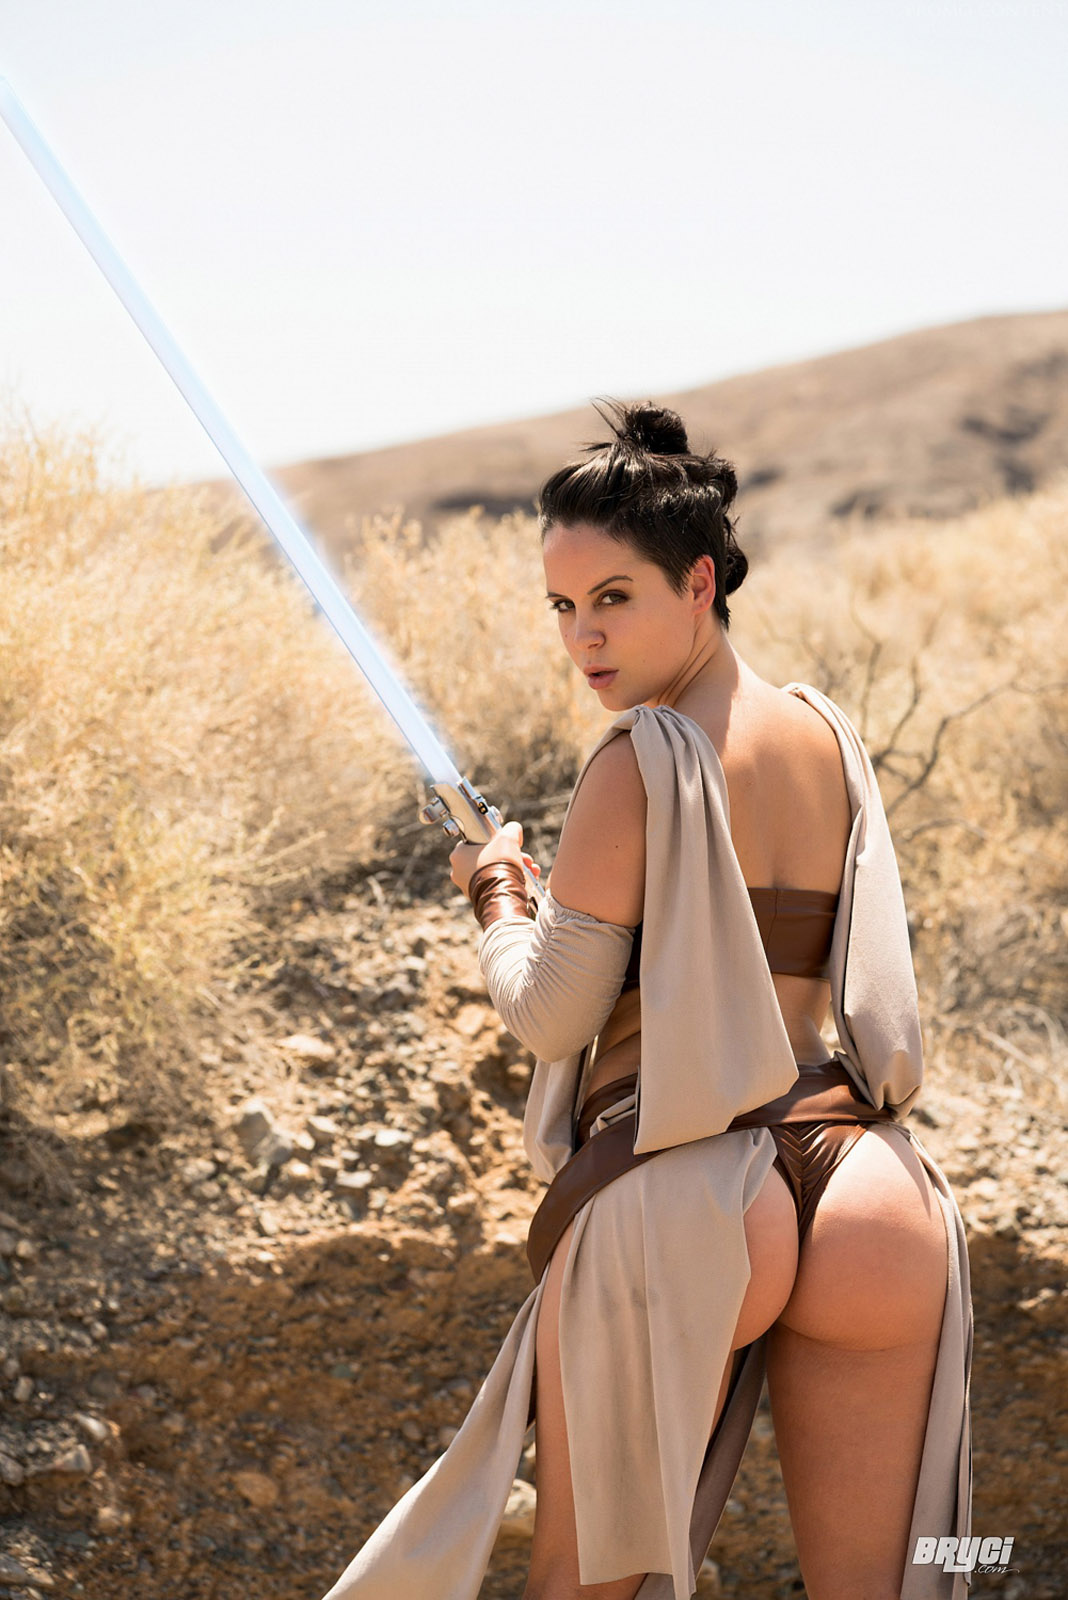 from Enrique sexy star wars cosplay naked